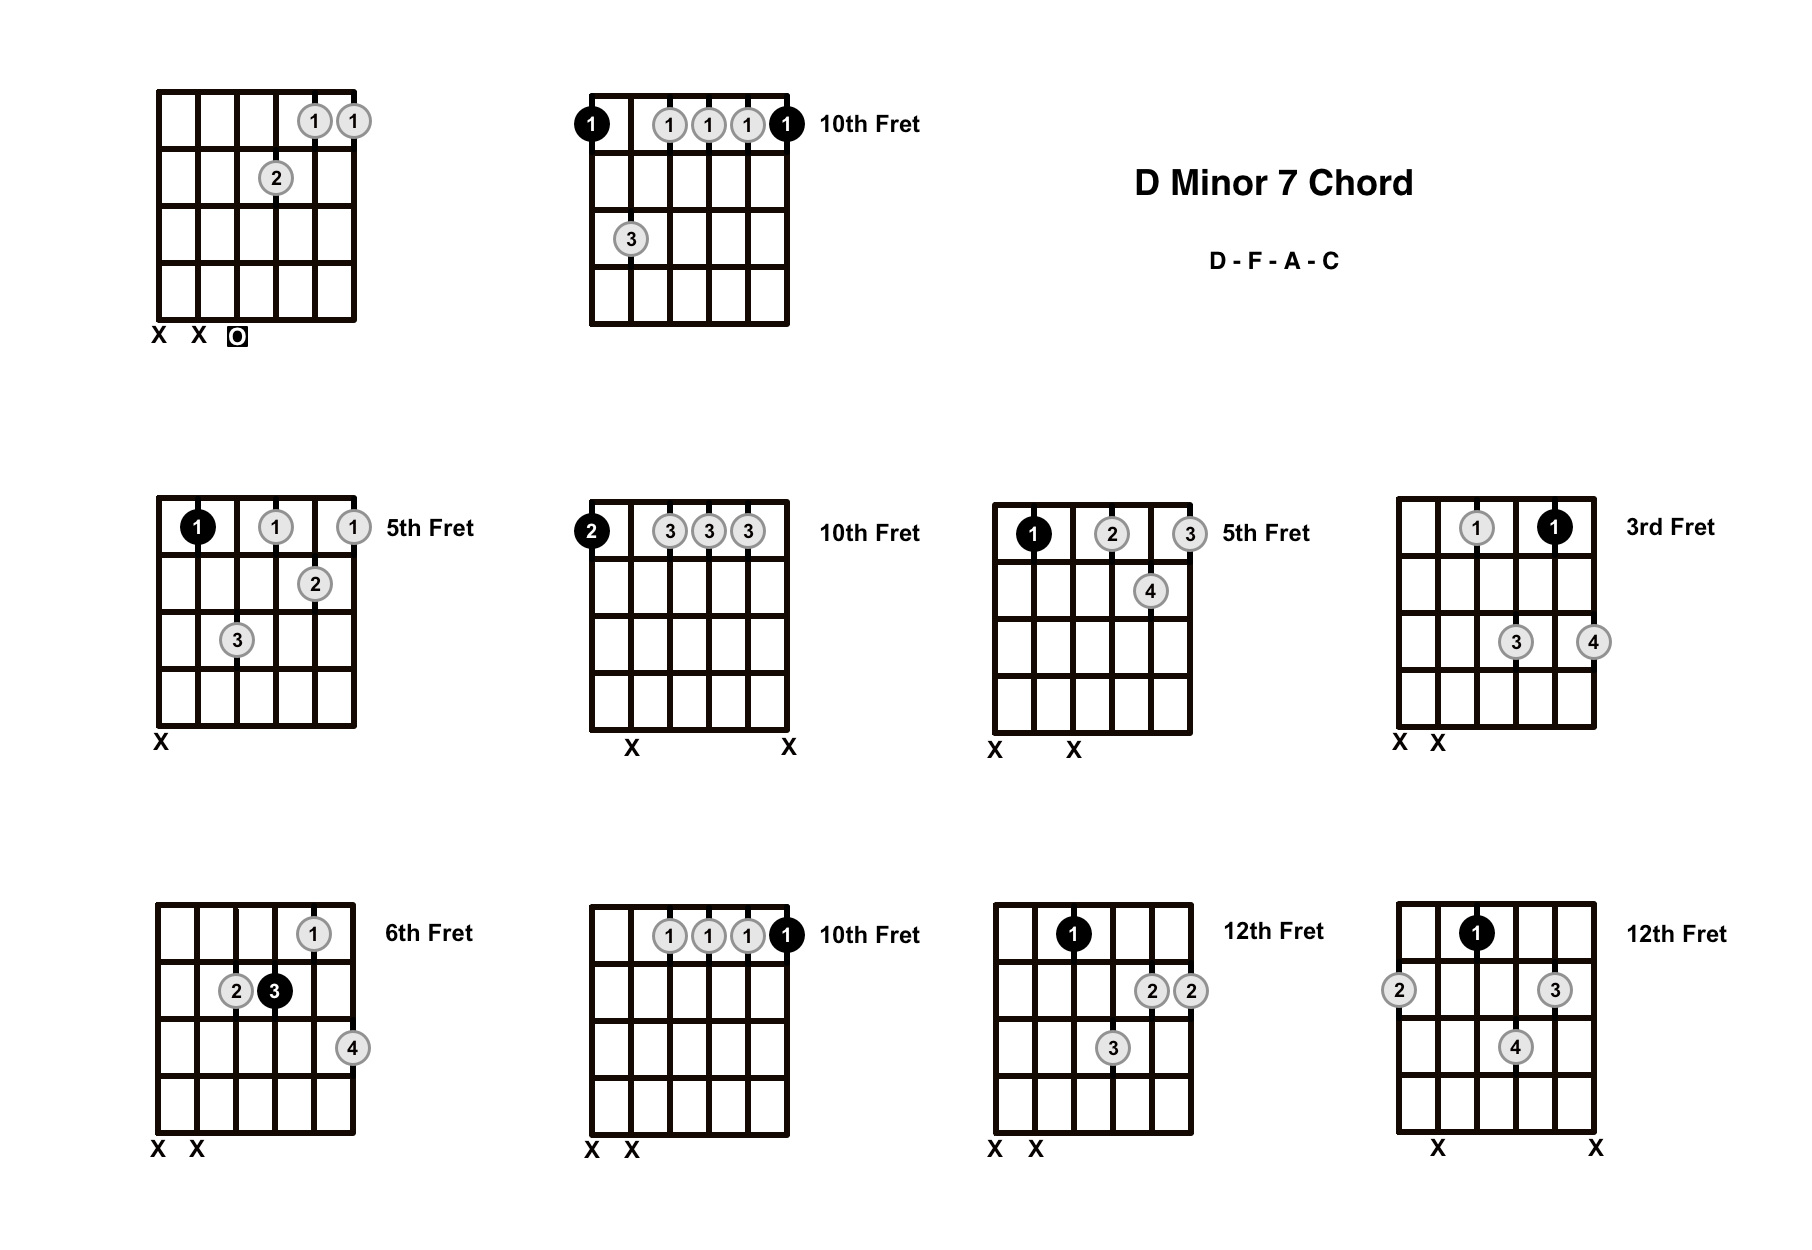 Dm7 Chord on the Guitar (D Minor ) – Diagrams, Finger Positions, Theory